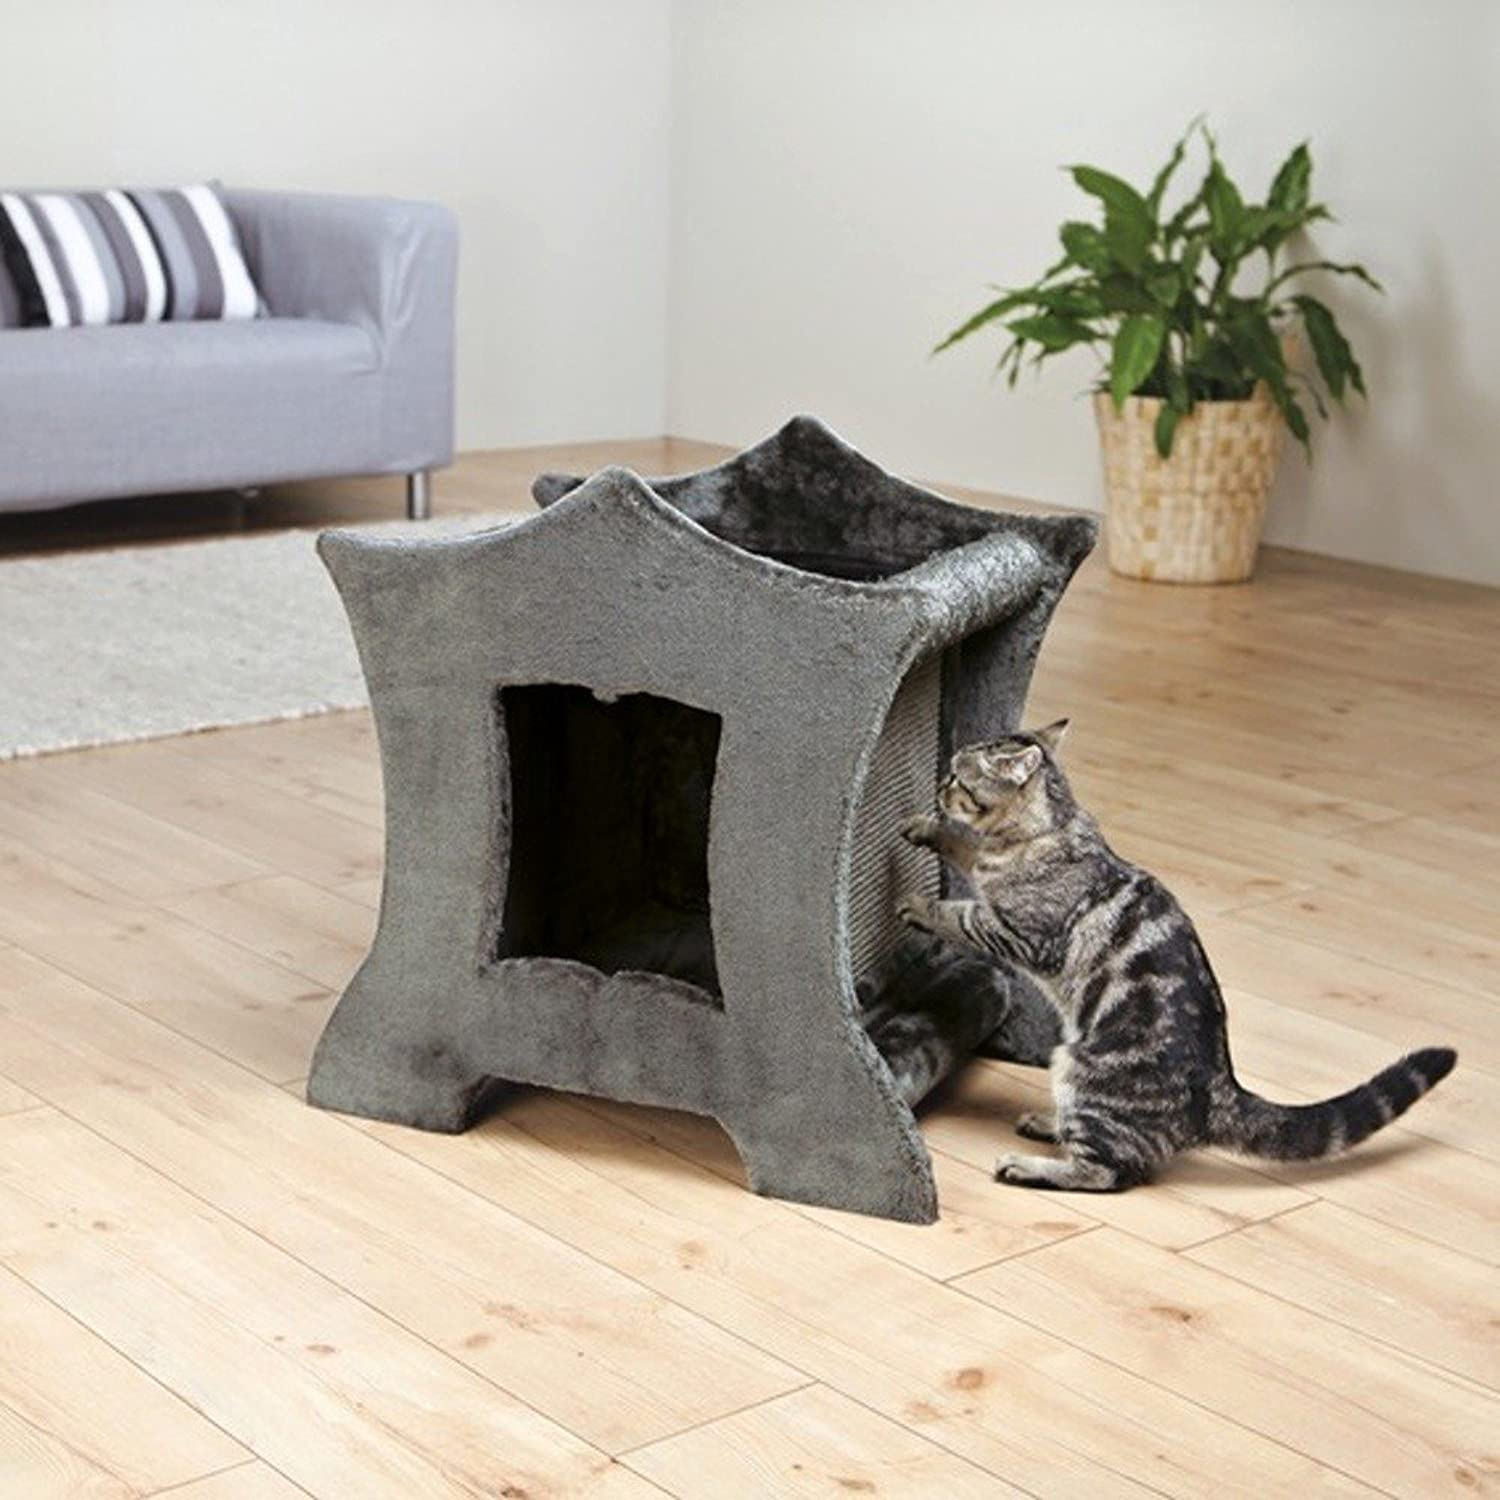 Dionis Cat Tower With Natural Sisal